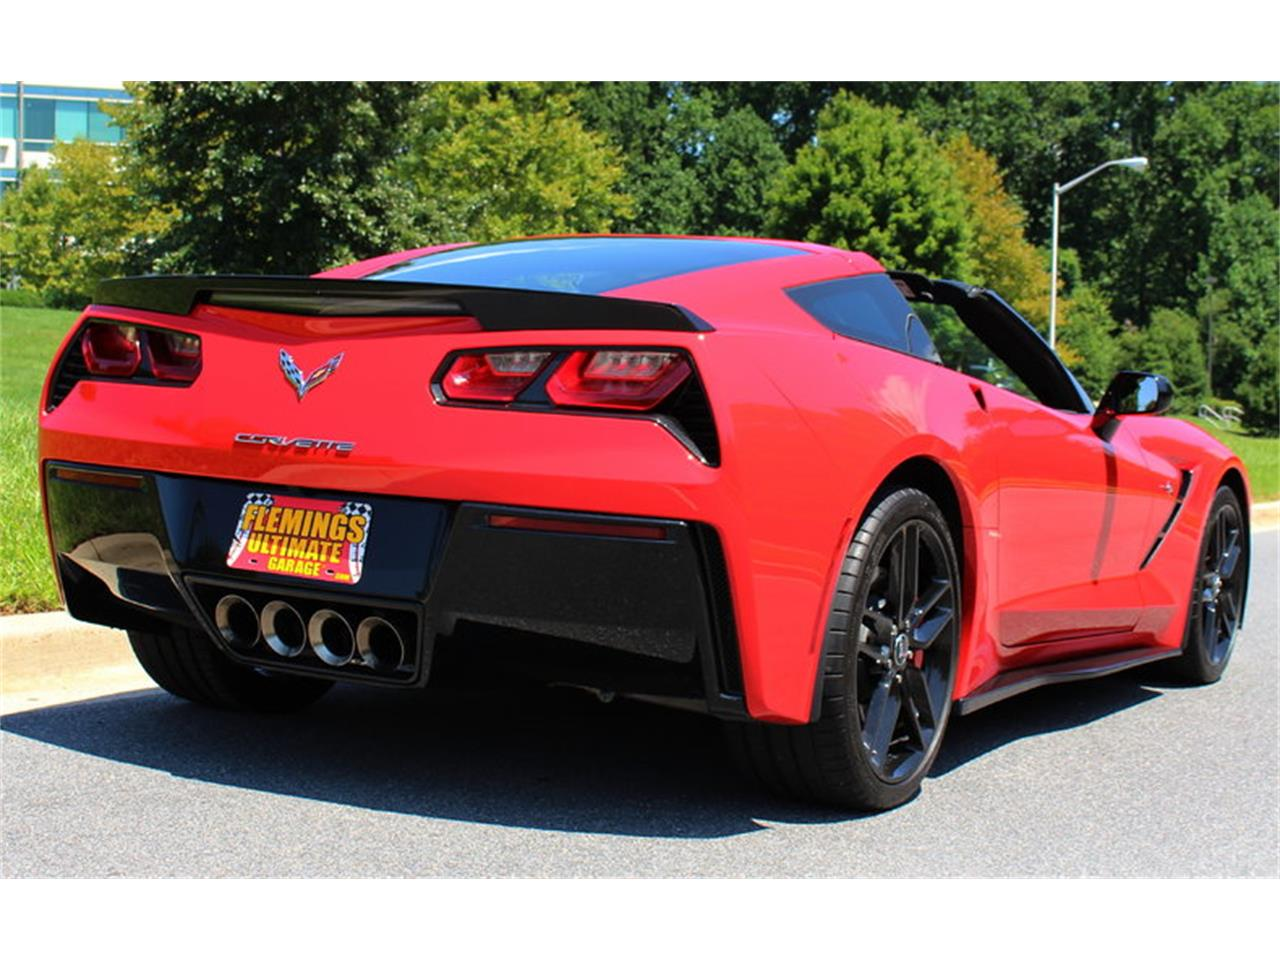 Large Picture of 2014 Corvette located in Maryland Offered by Flemings Ultimate Garage - MGRV